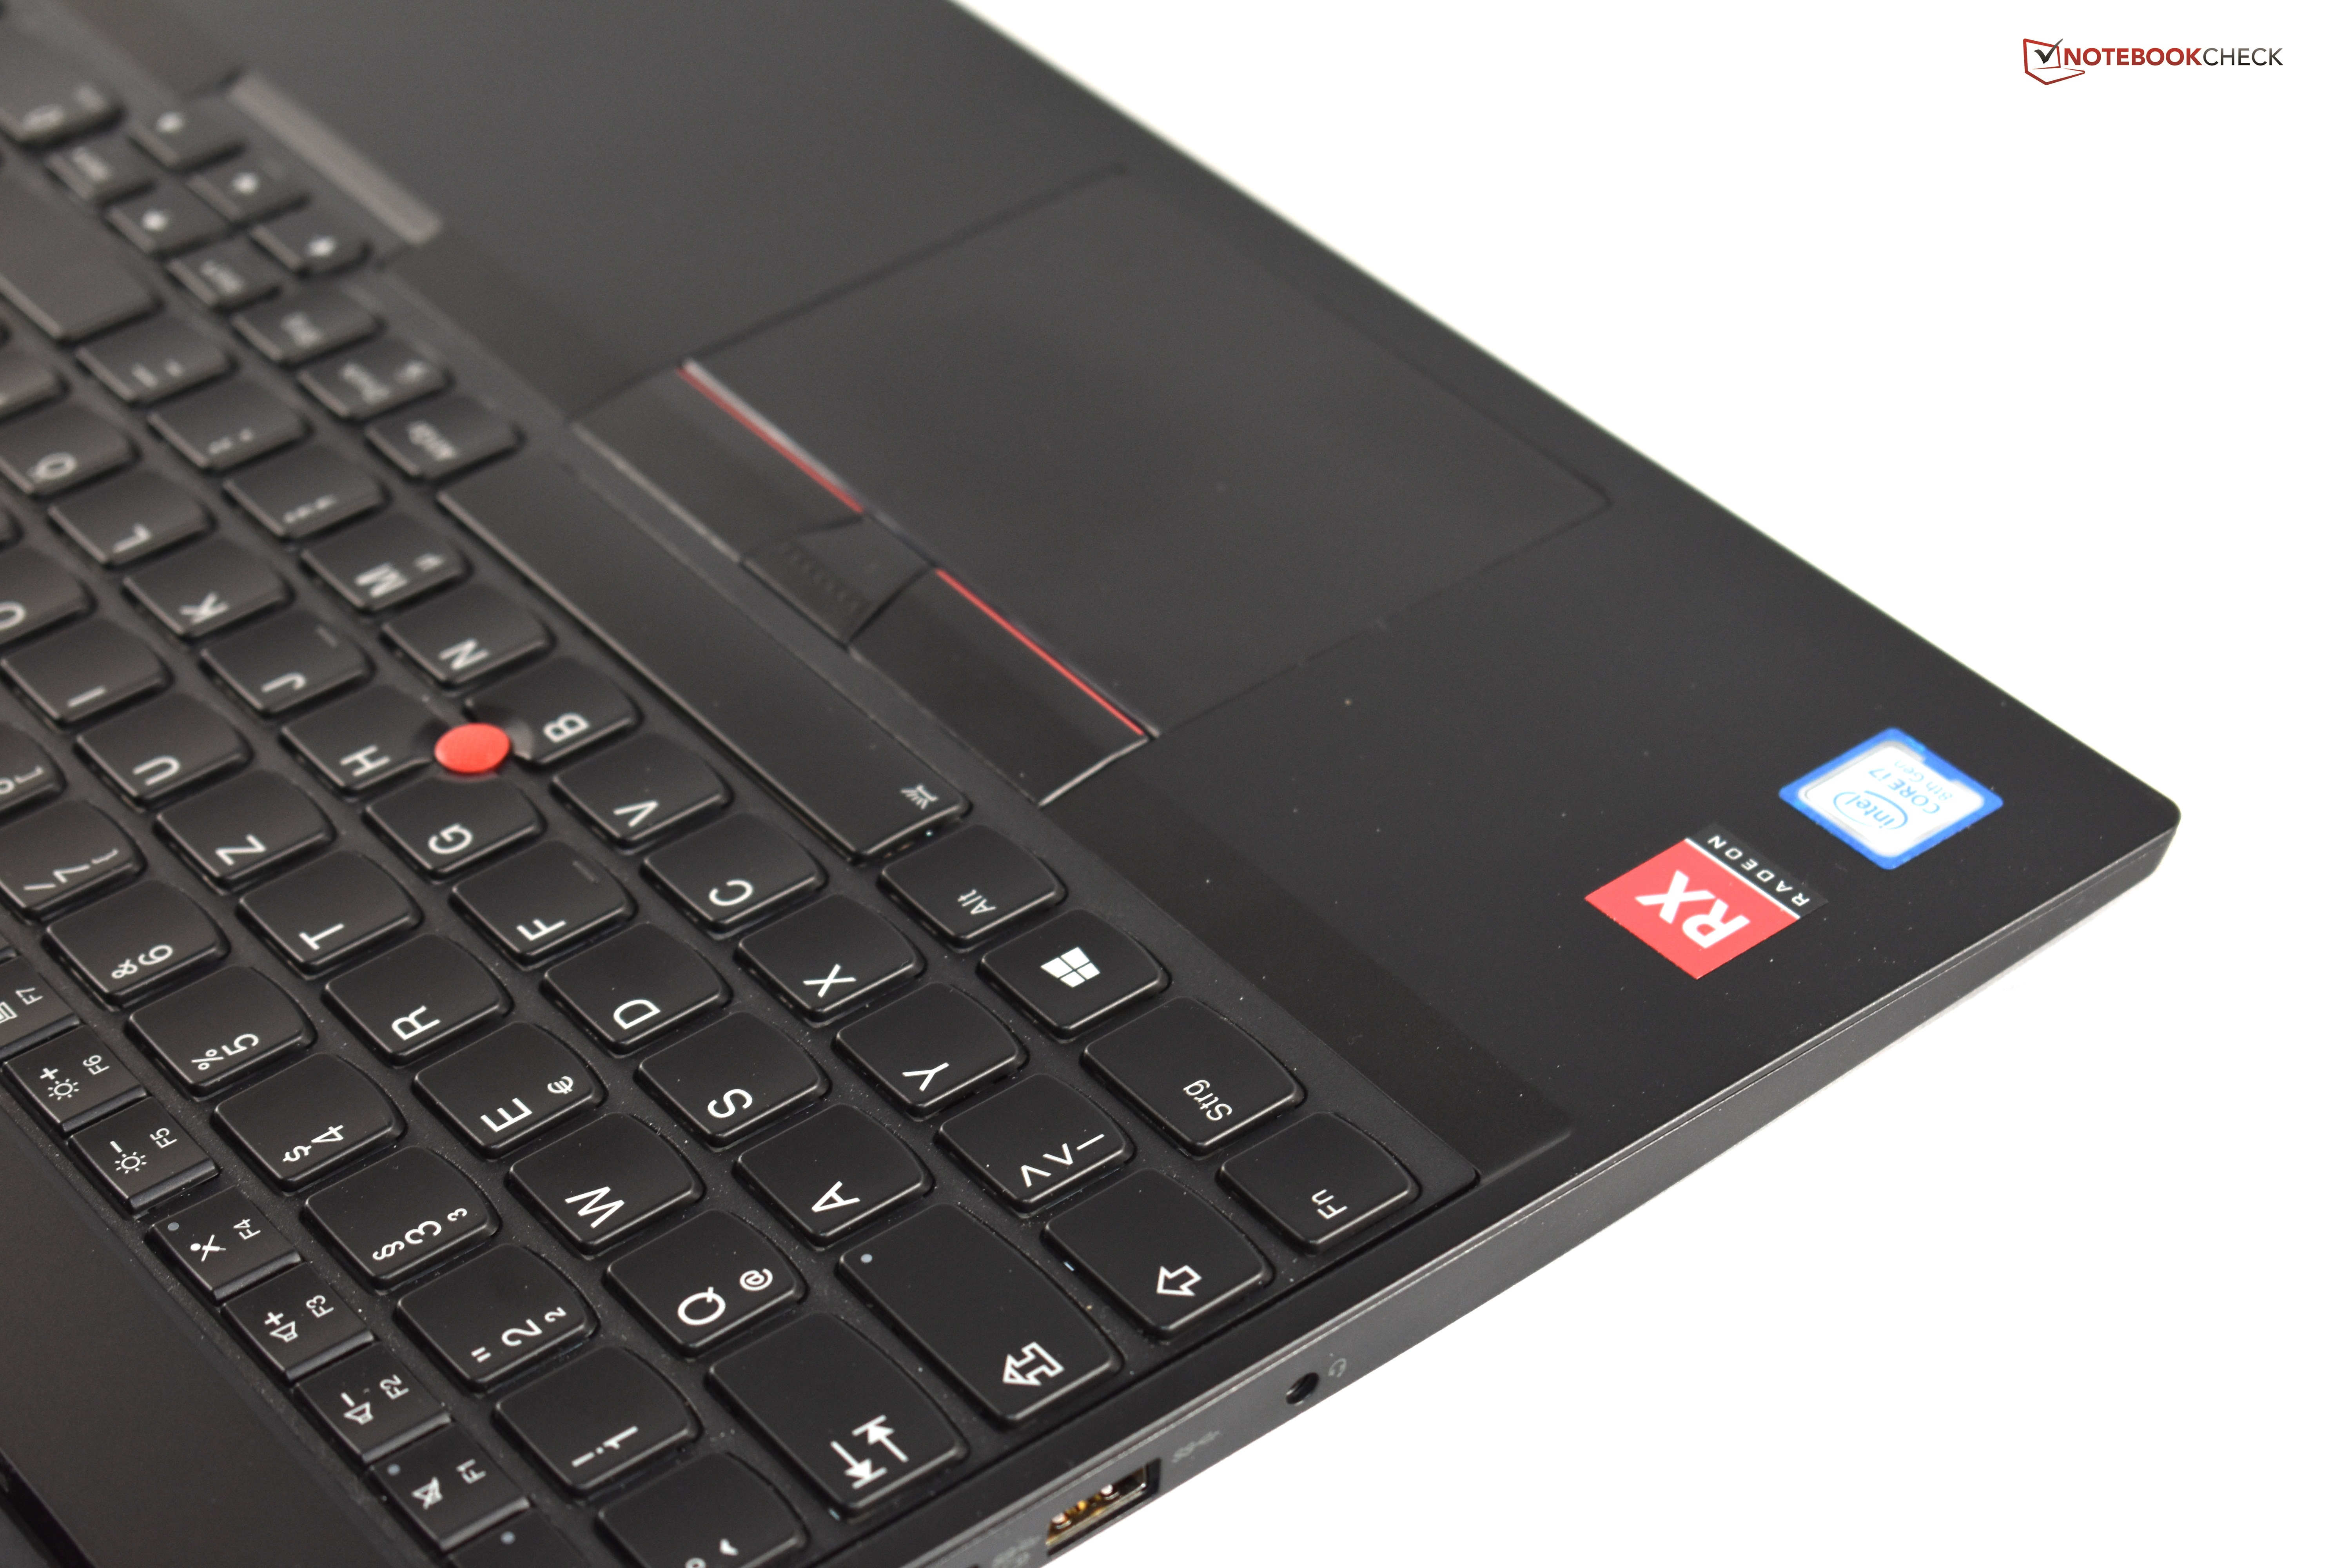 Lenovo ThinkPad E580 (i7-8550U, RX 550) Laptop Review